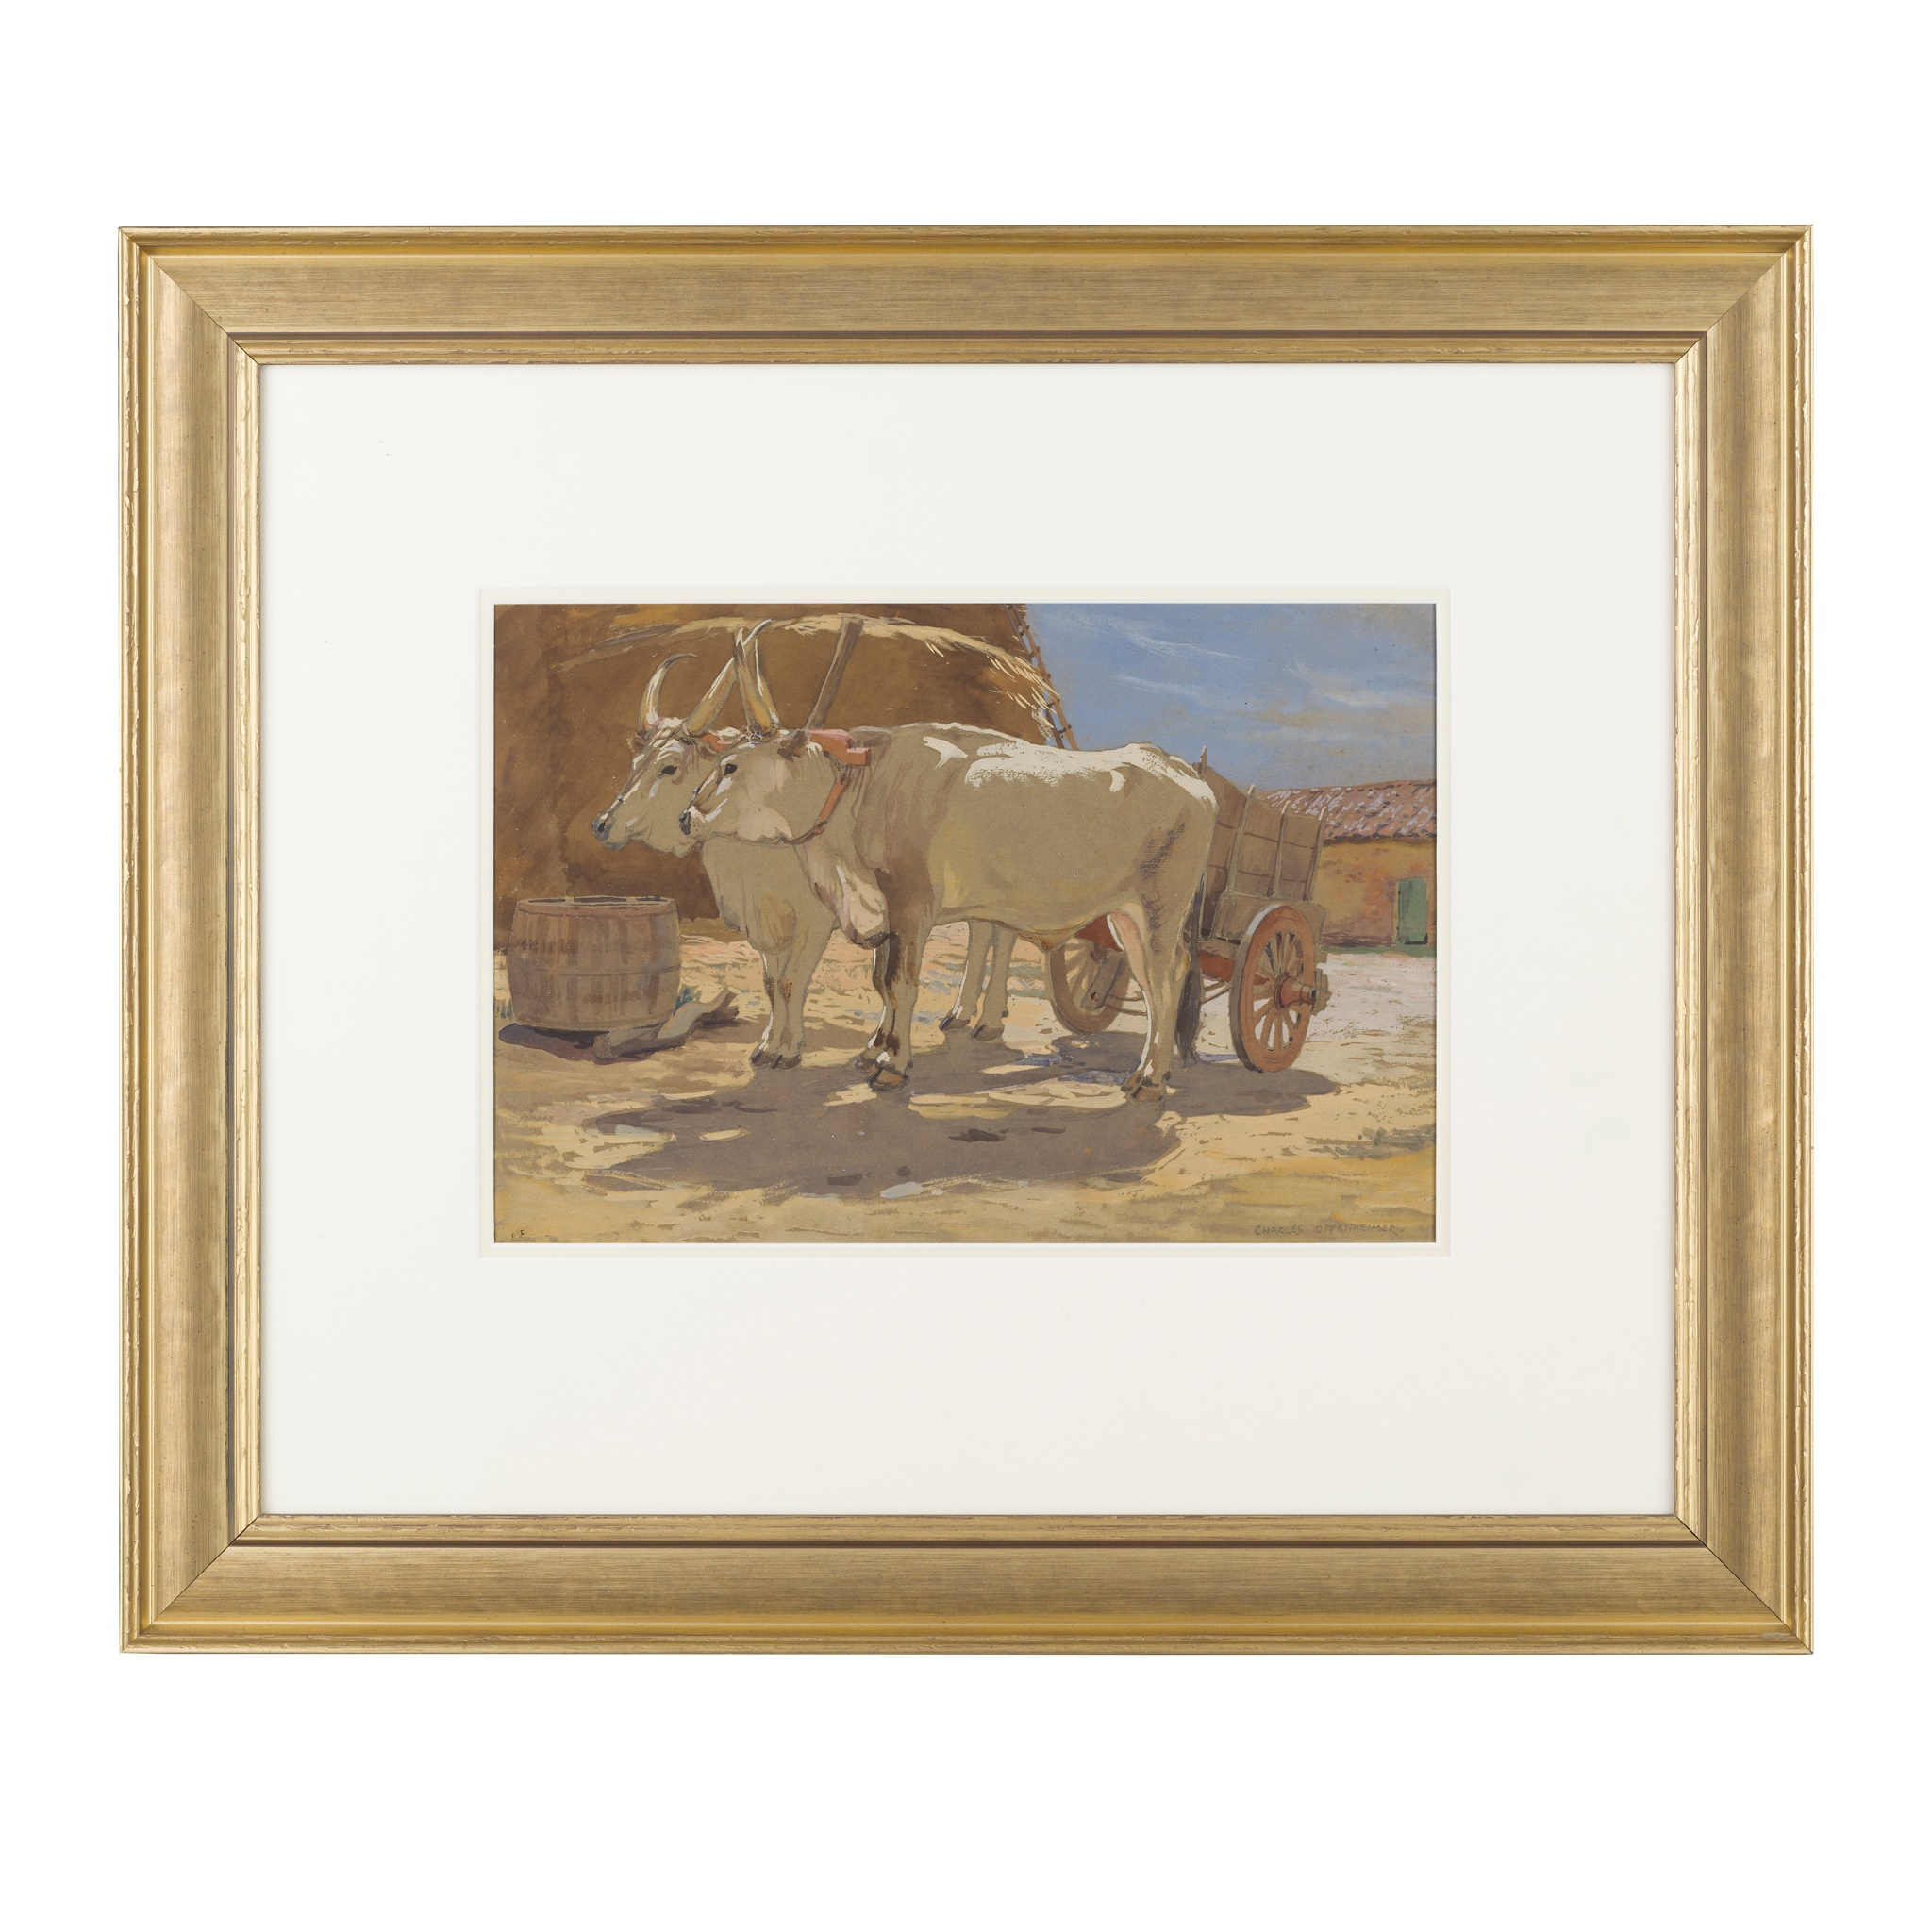 § CHARLES OPPENHEIMER R.S.A., R.S.W (SCOTTISH 1876-1961) CHIANINA CATTLE IN A FARMYARD - Image 2 of 3